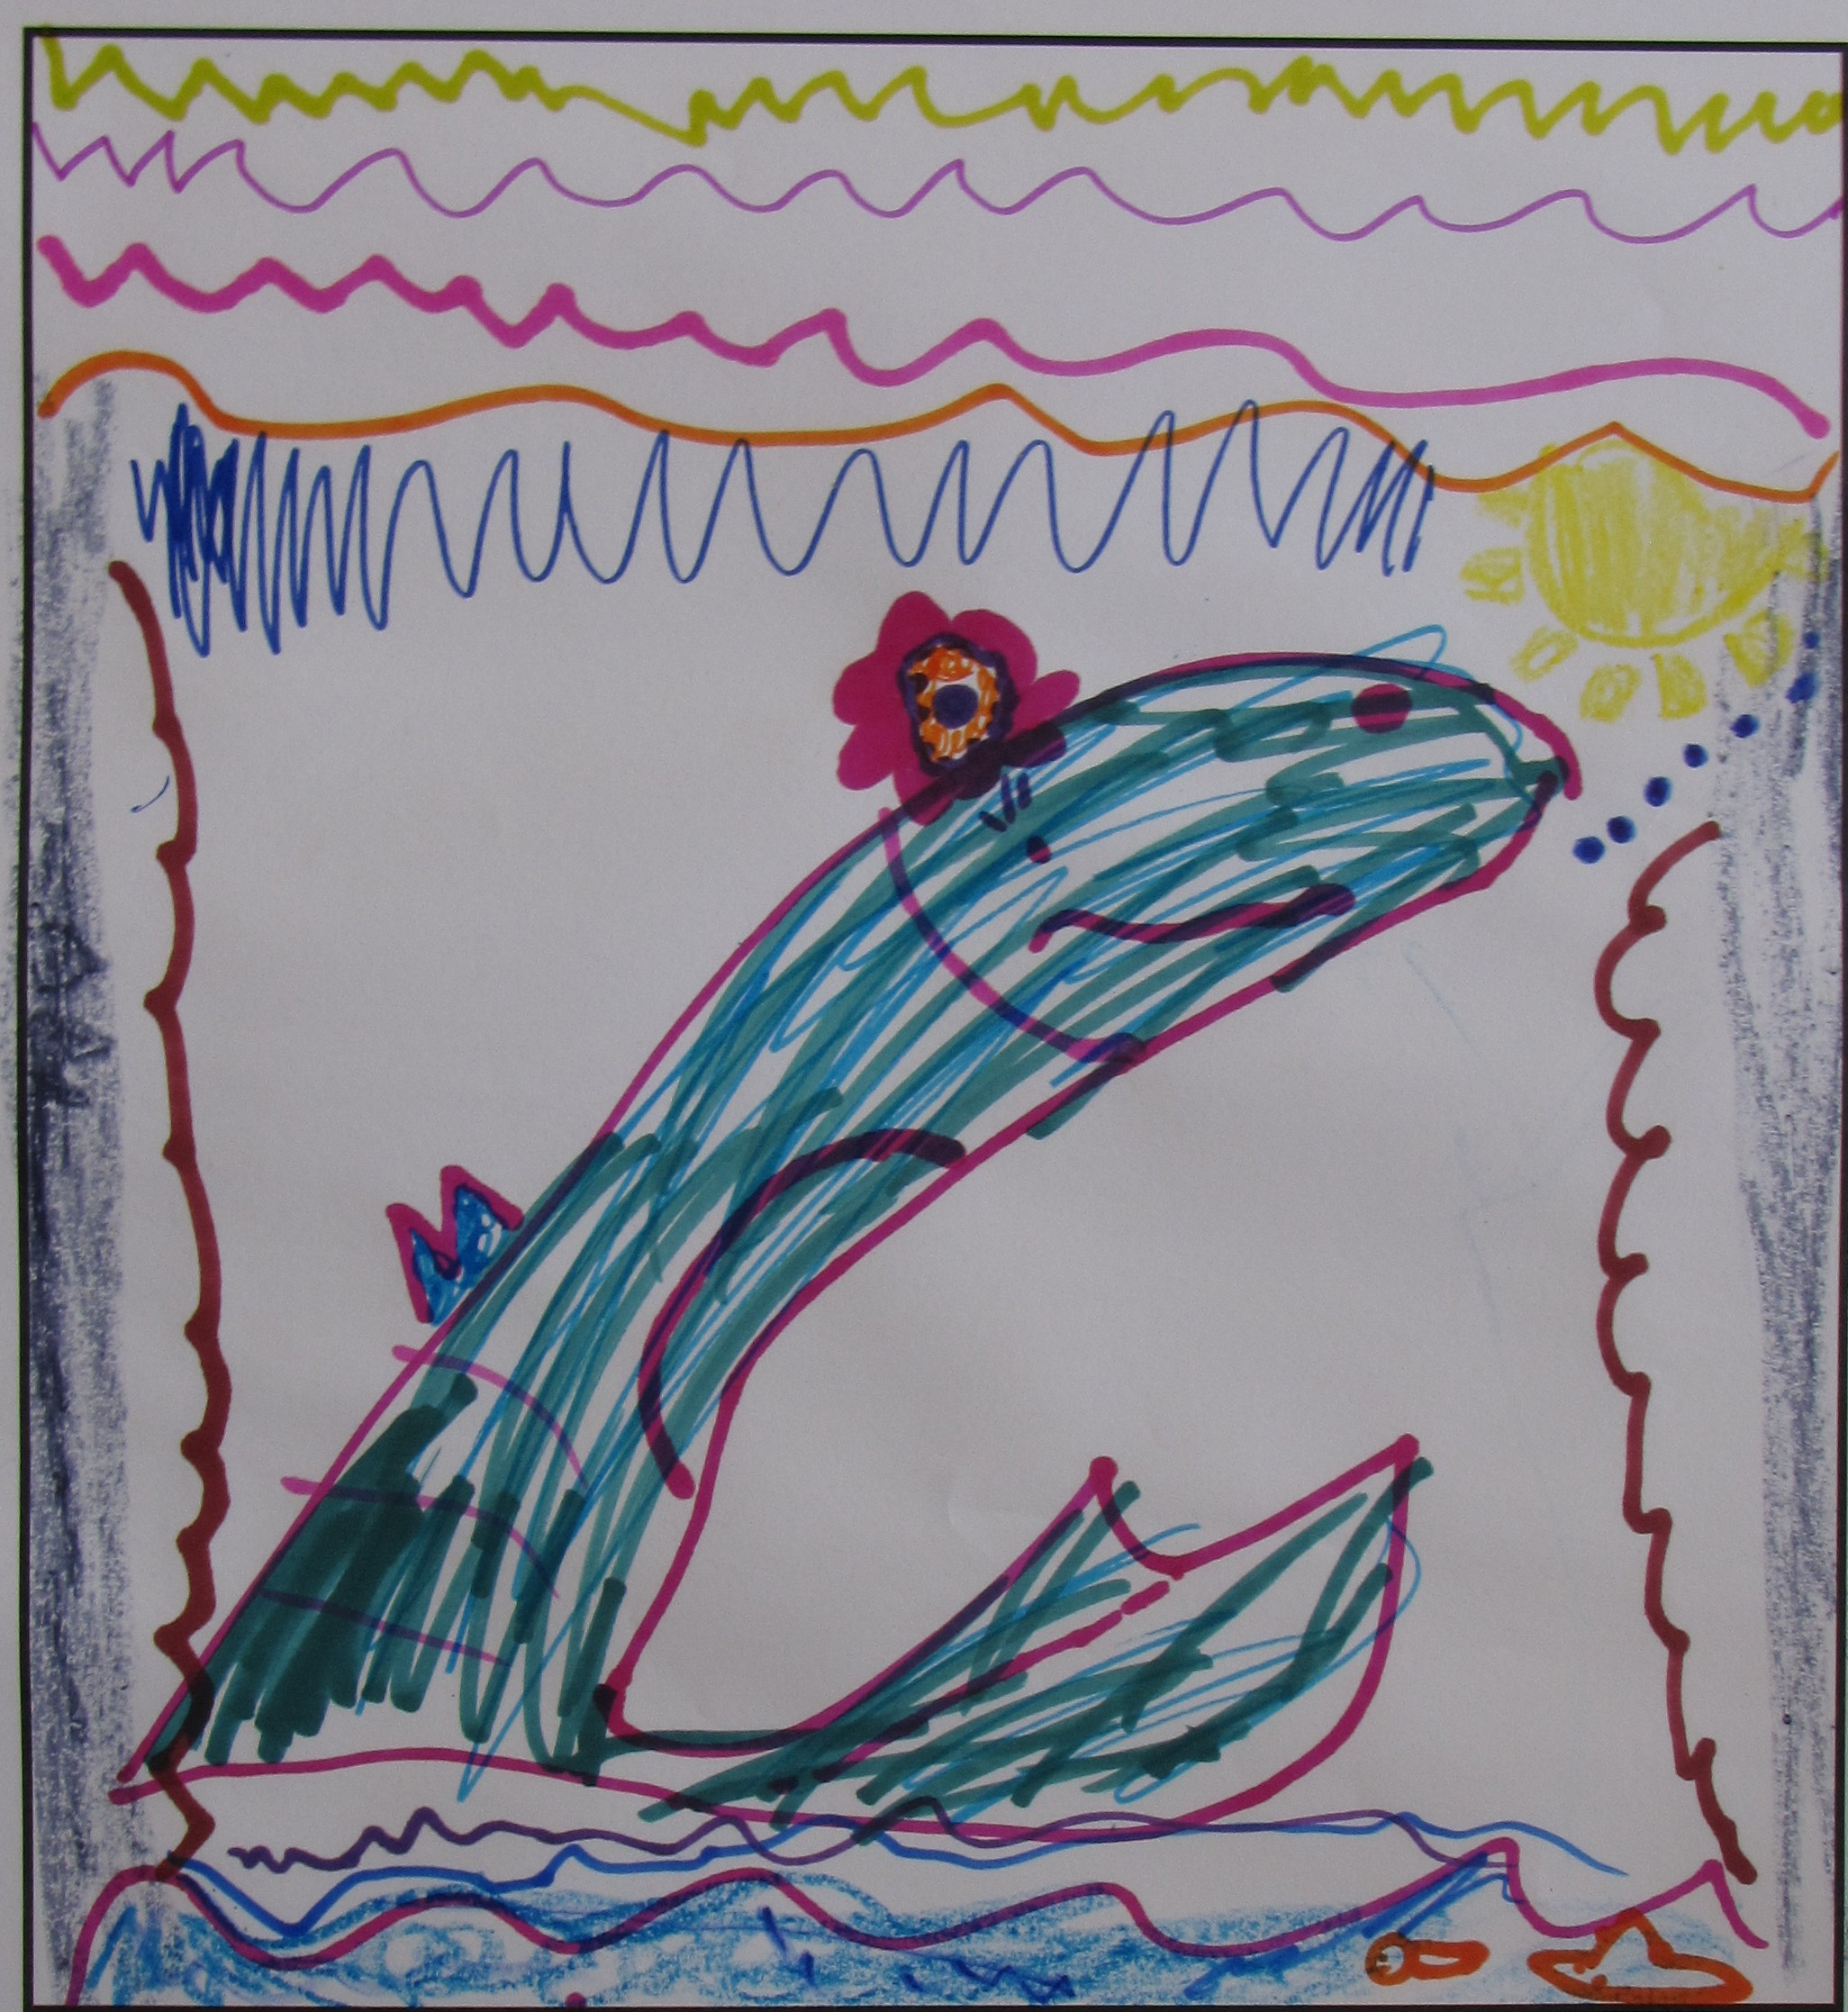 'My Colourful Whale' by Amelia Drury, Age 7.